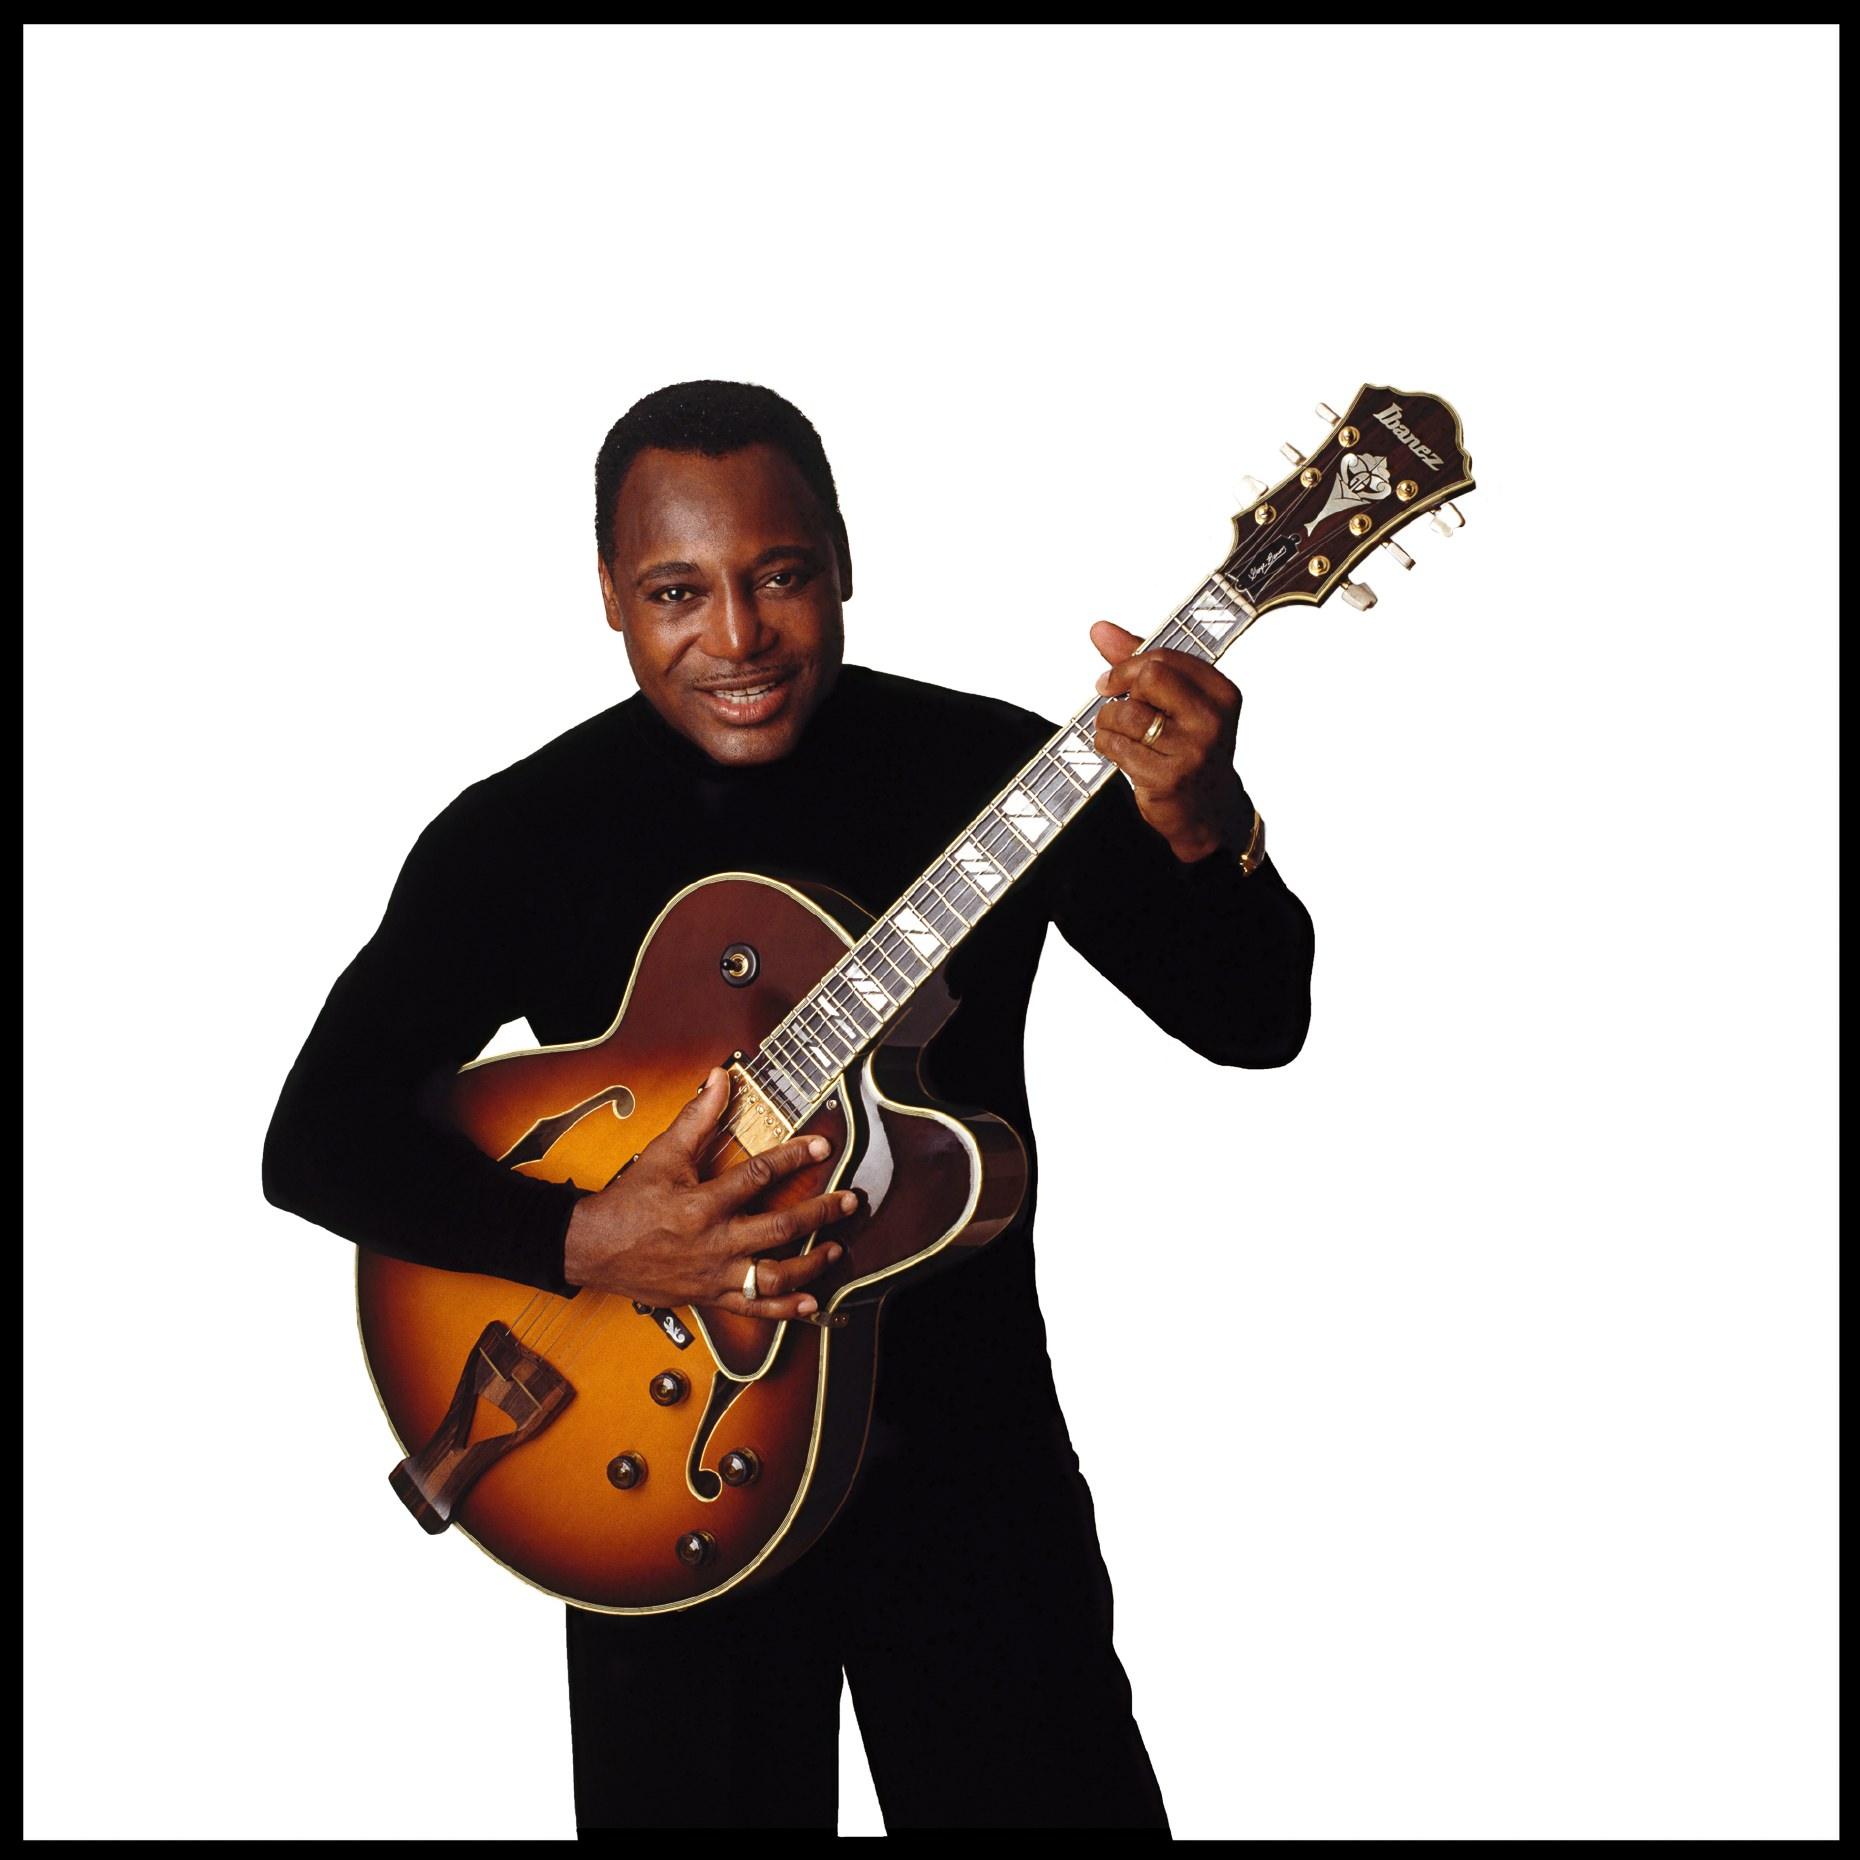 George Benson - Jazz Guitarist